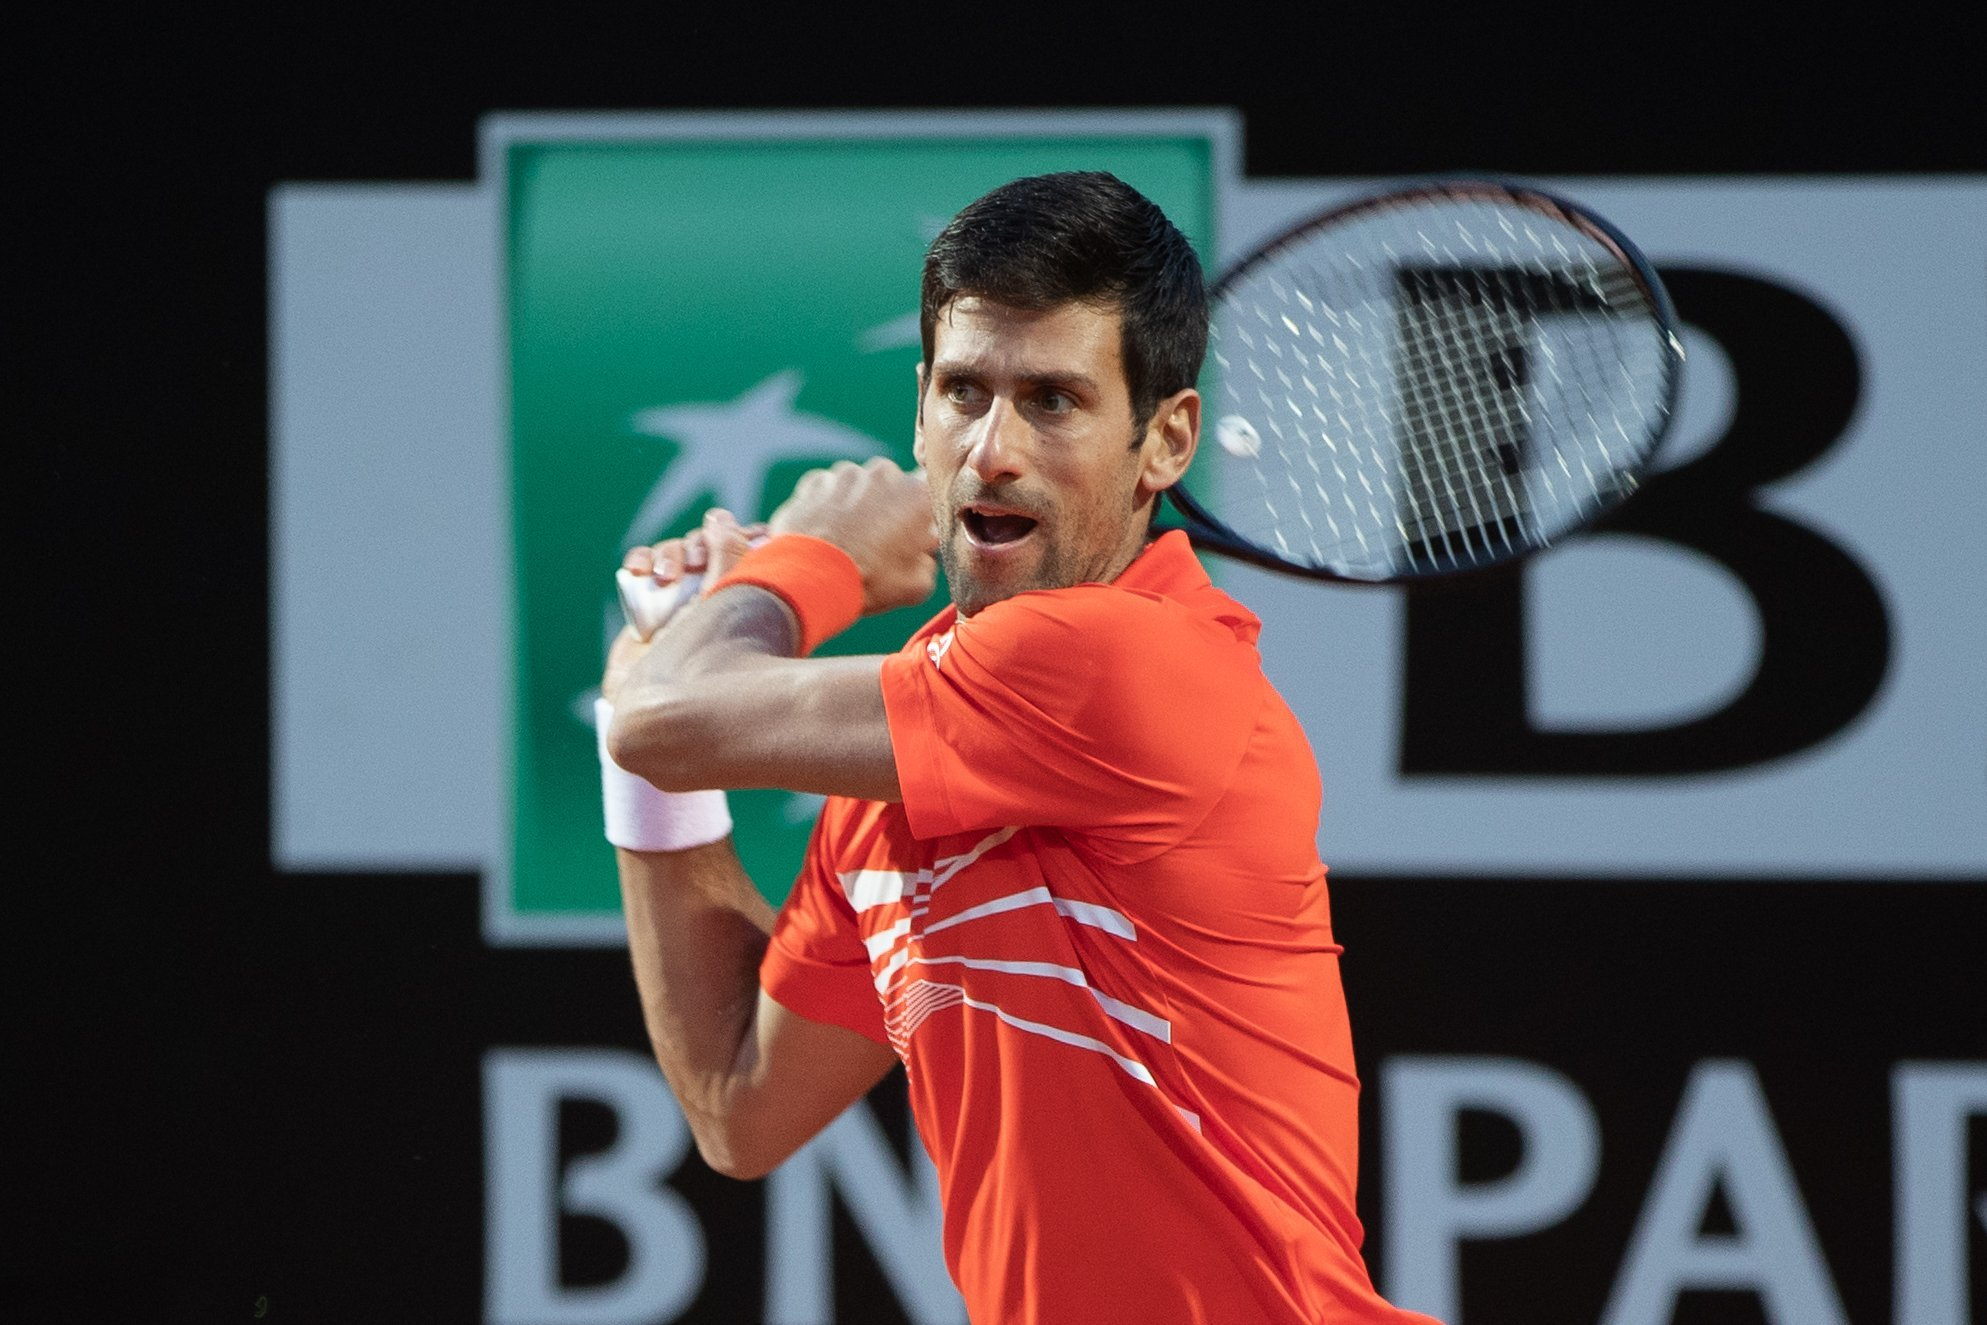 Novak Djokovic Battles Past Diego Schwartzman To Set Up A Blockbuster Final Against Rafael Nadal In Rome Ubitennis